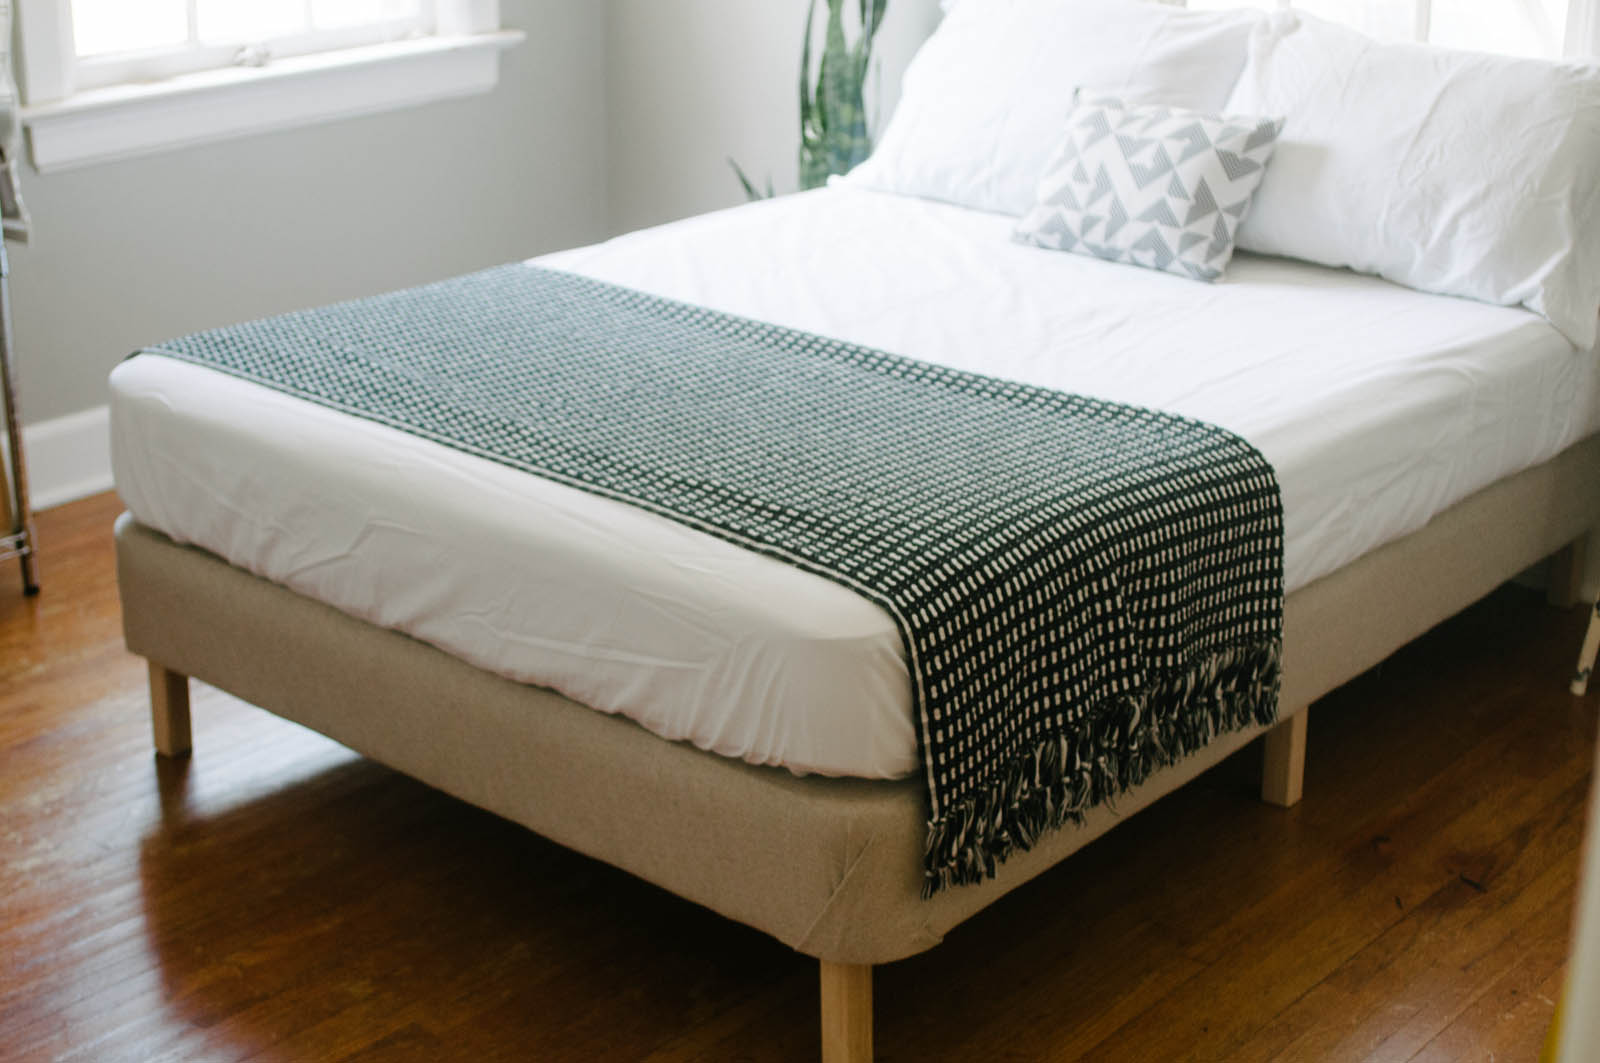 At the clever bunny you can find out all of the details behind this modern diy bed taking a box spring and making a bed frame is easier than you may think